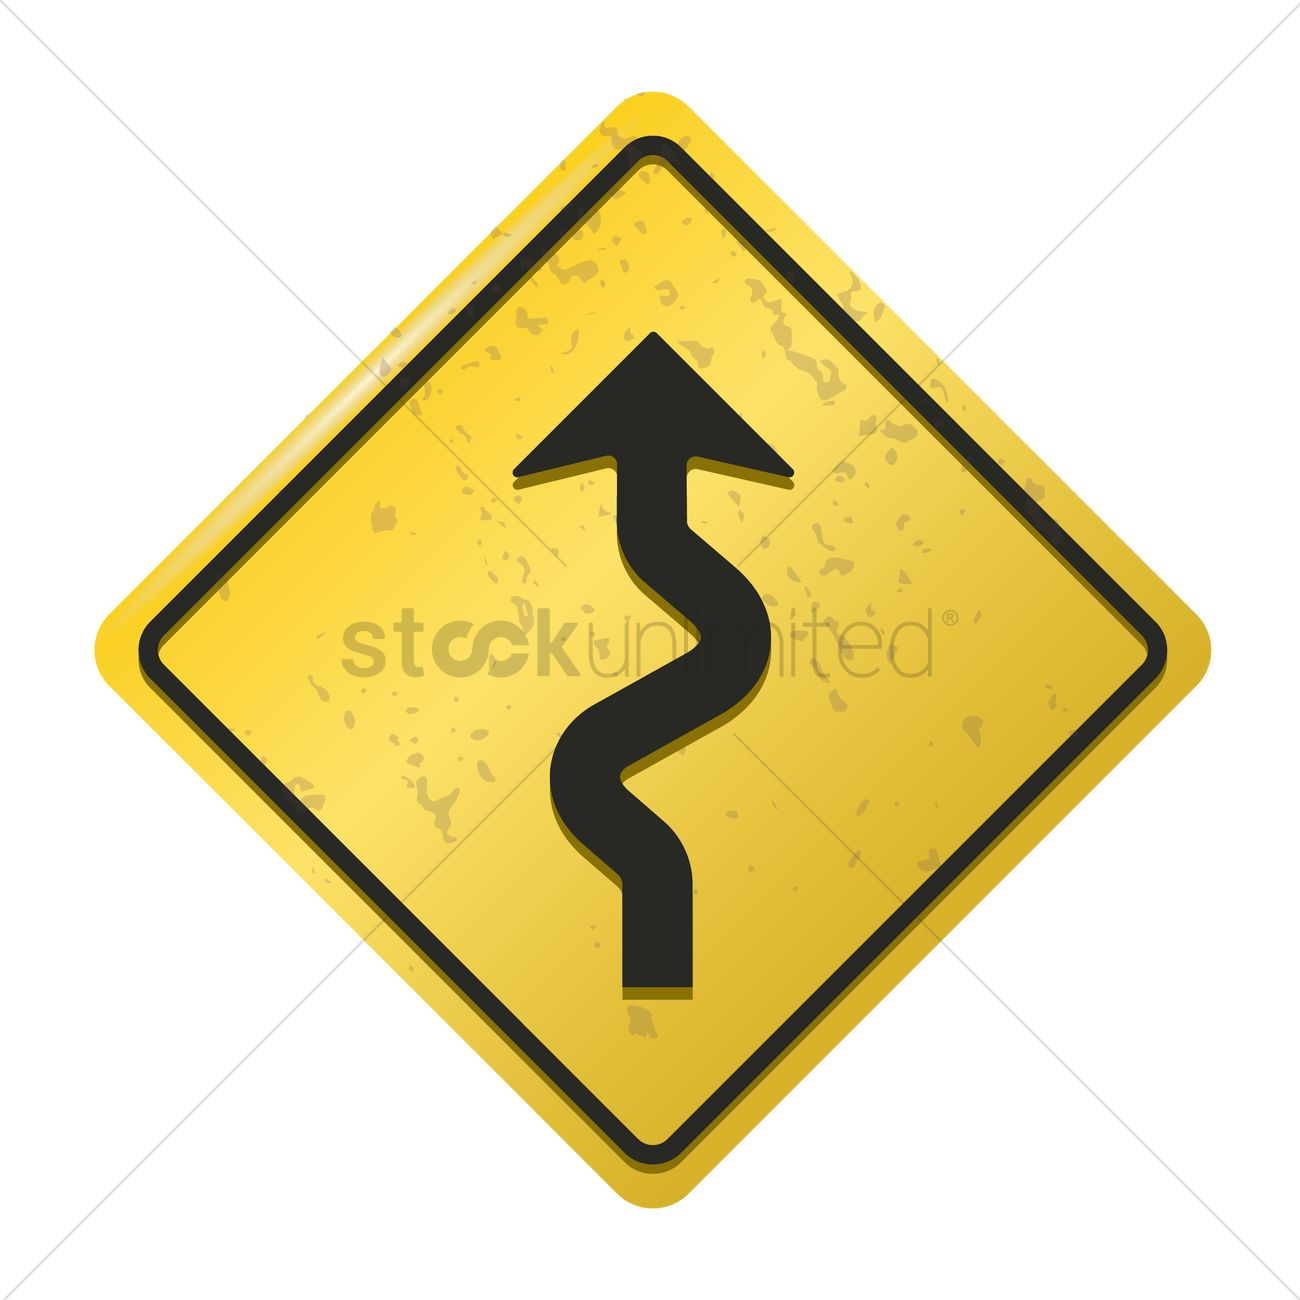 Winding road sign vector image 1572268 stockunlimited winding road sign vector graphic publicscrutiny Images